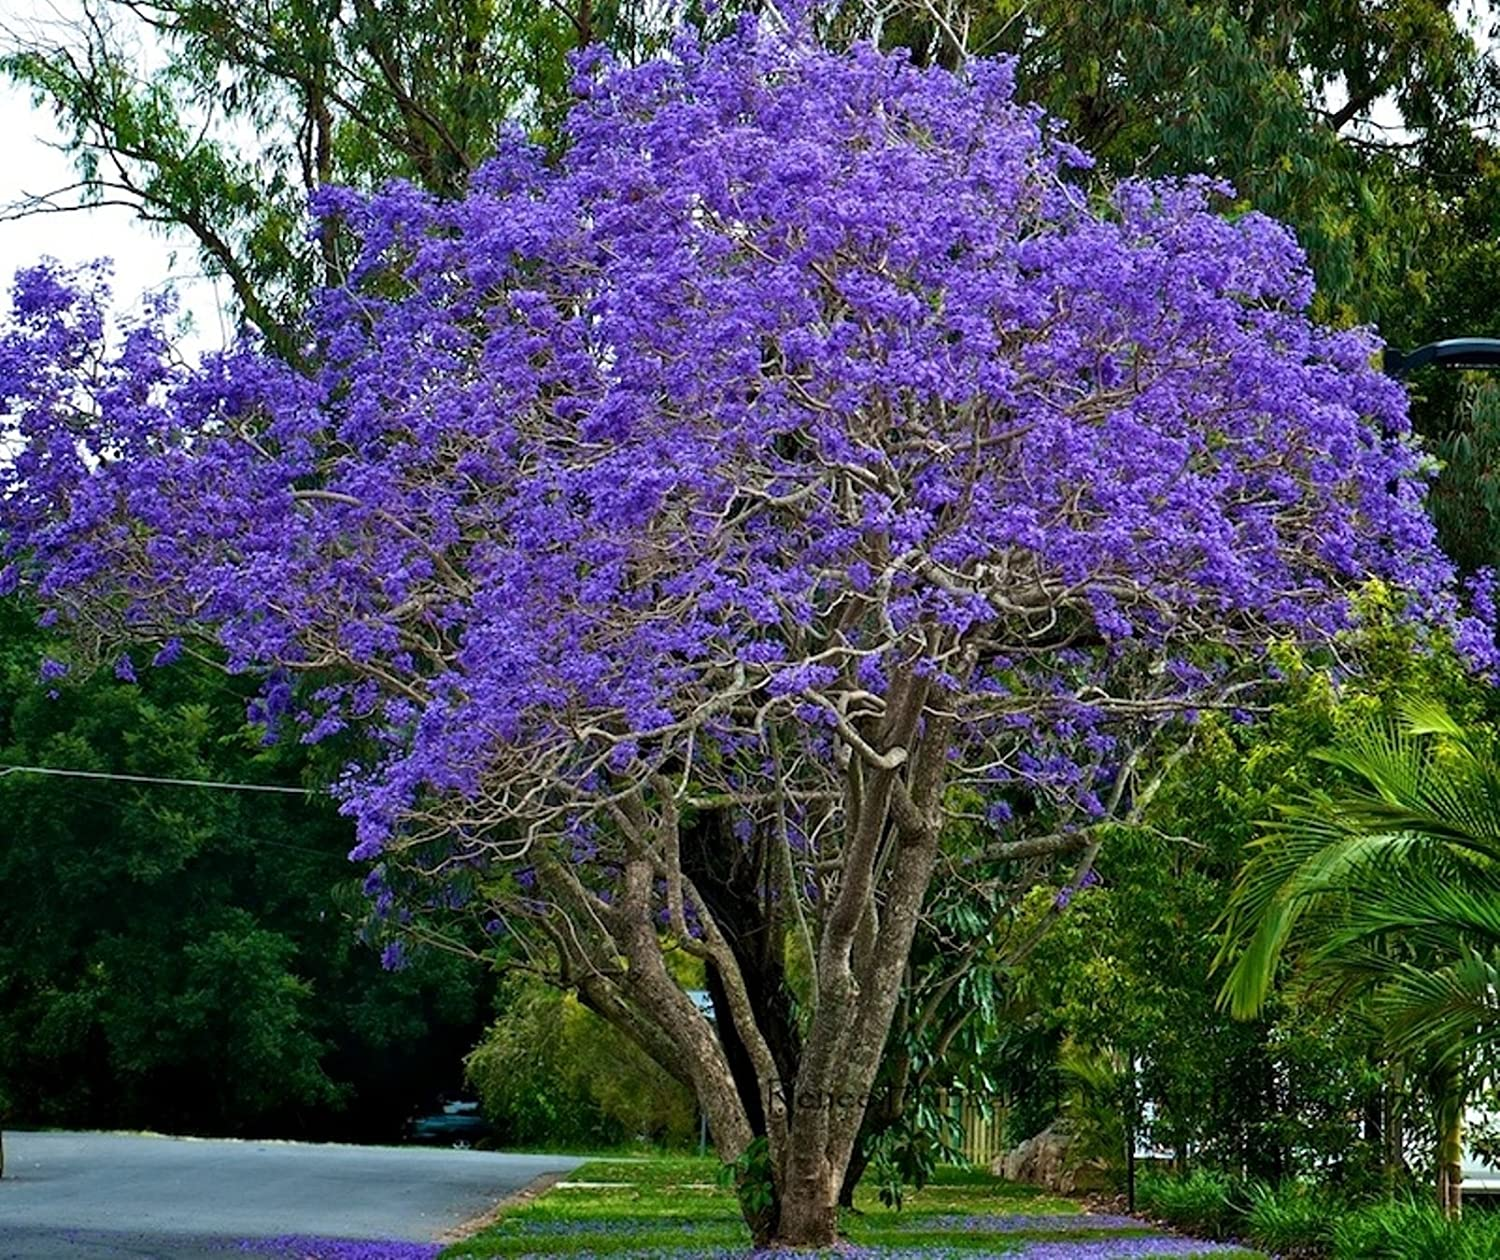 Seedstores 10 seeds of blue jacaranda neeli gulmohur jacaranda seedstores 10 seeds of blue jacaranda neeli gulmohur jacaranda mimosifolia for growing amazon garden outdoors izmirmasajfo